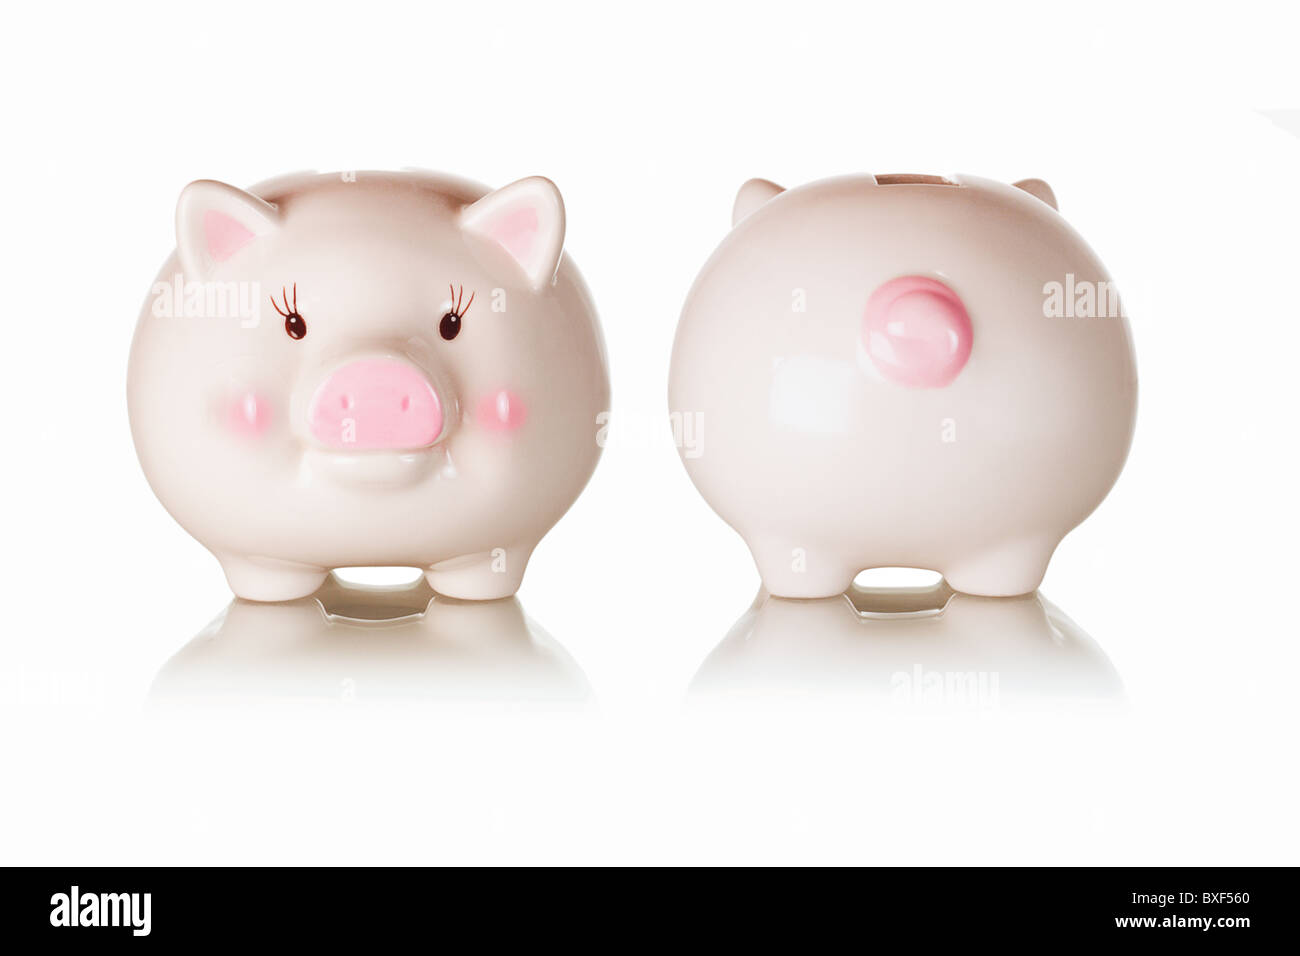 Frontal and rear views of piggybank with reflections on white background - Stock Image